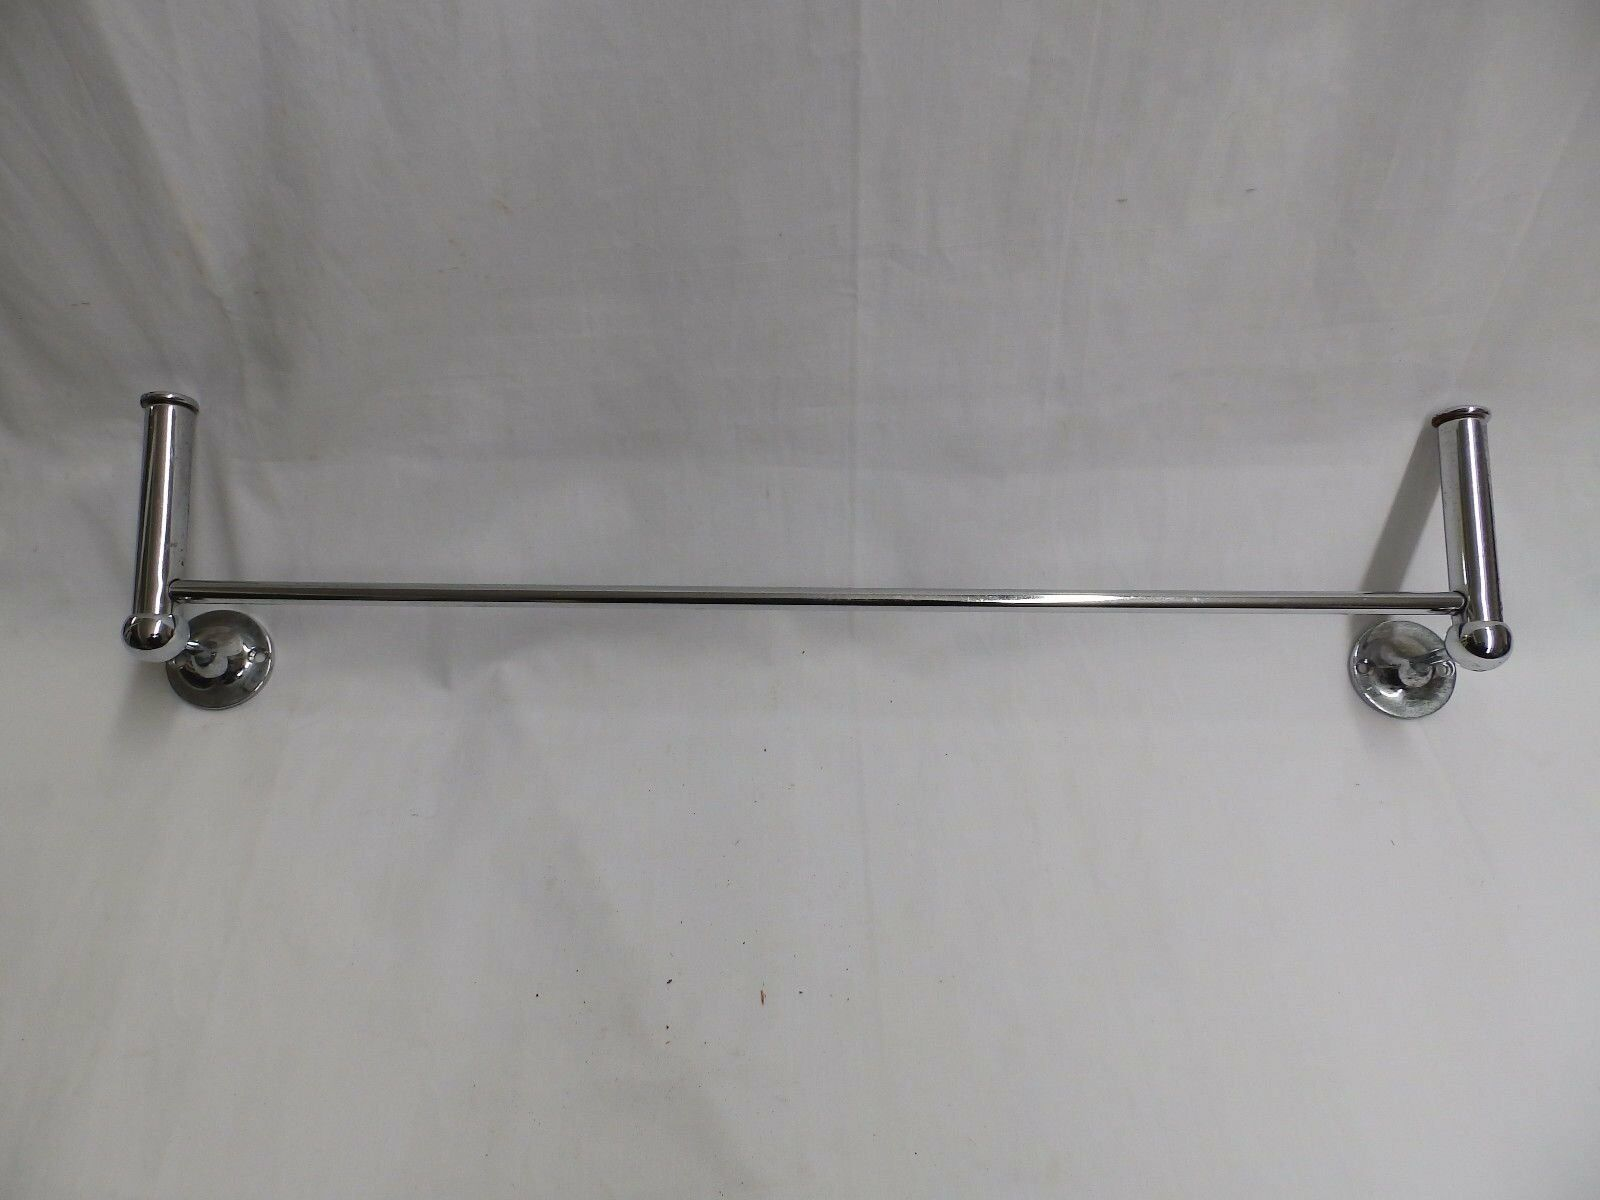 Vintage Chrome Towel Bar Robe Hooks Old Bathroom Hardware Closet 4145-15